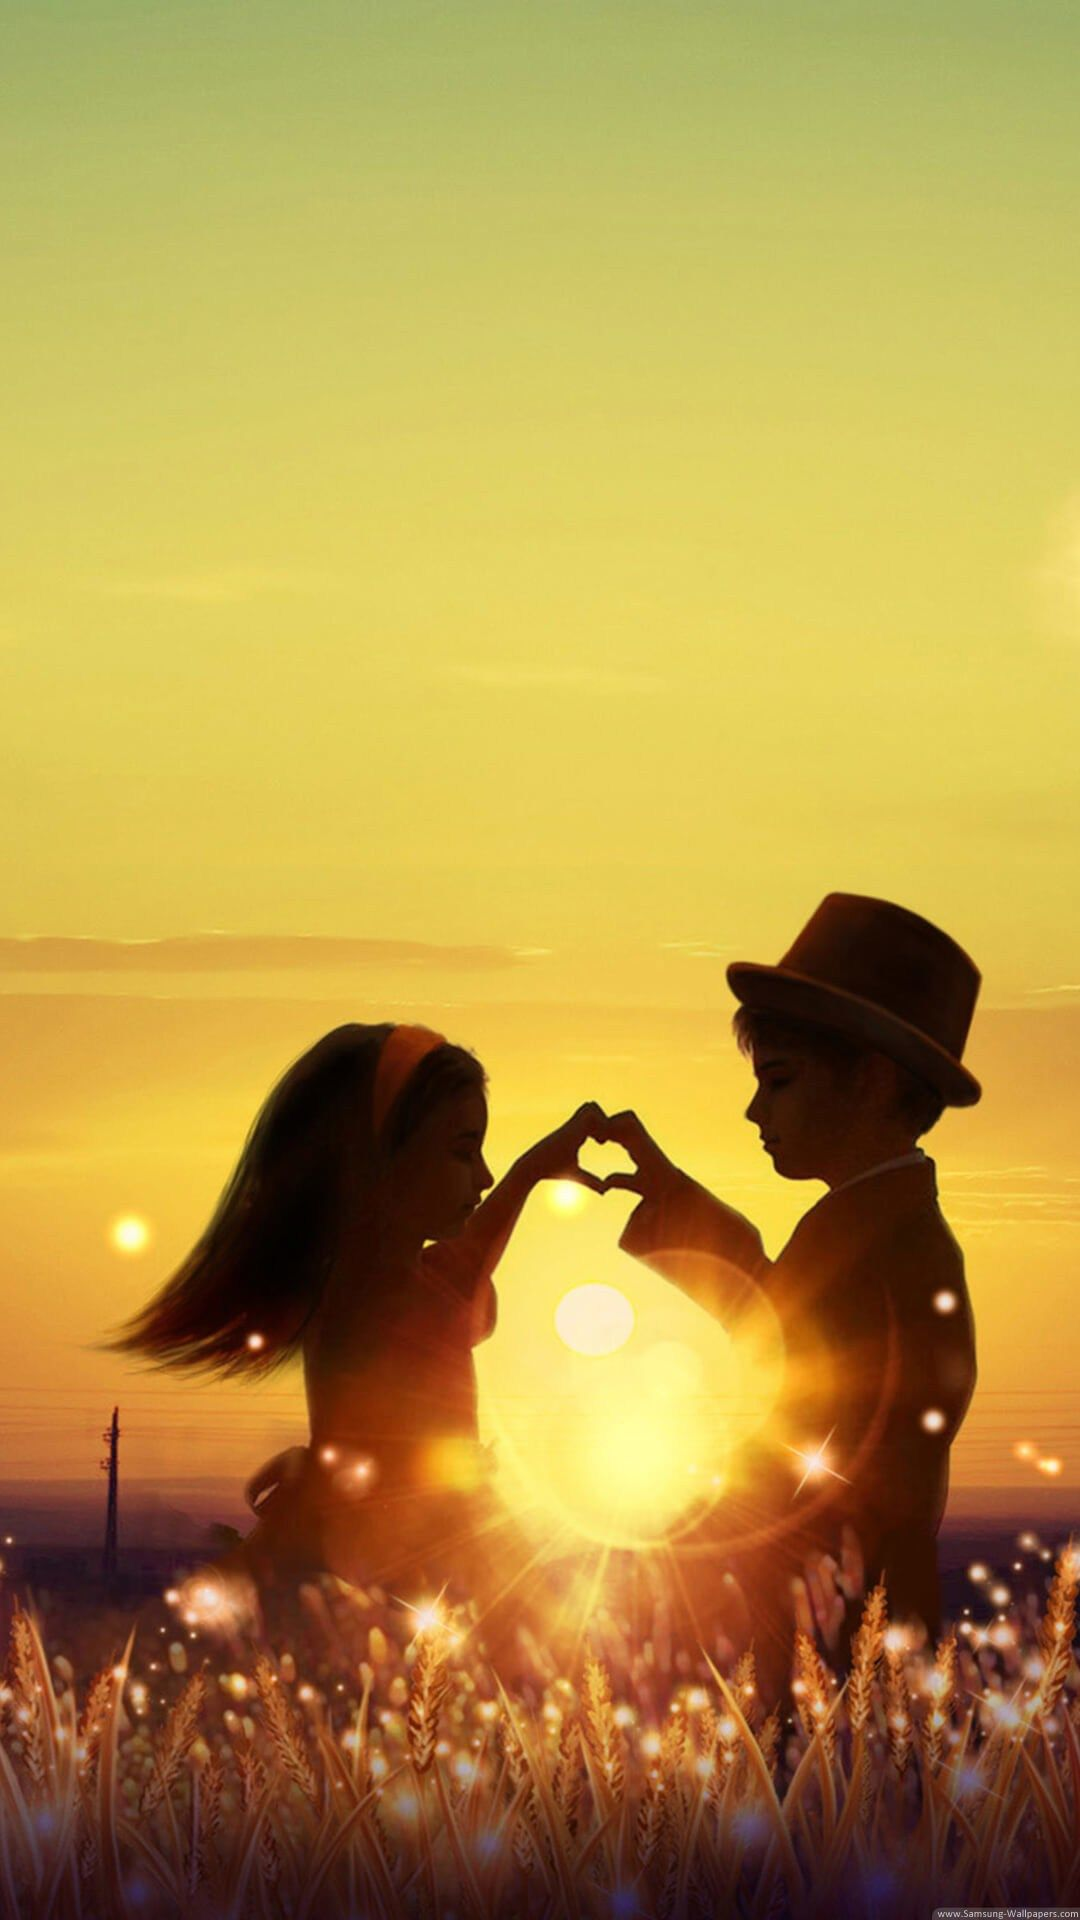 Cute Love For Mobile Phones Wallpapers Photo Is 4K Wallpaper 1080x1920